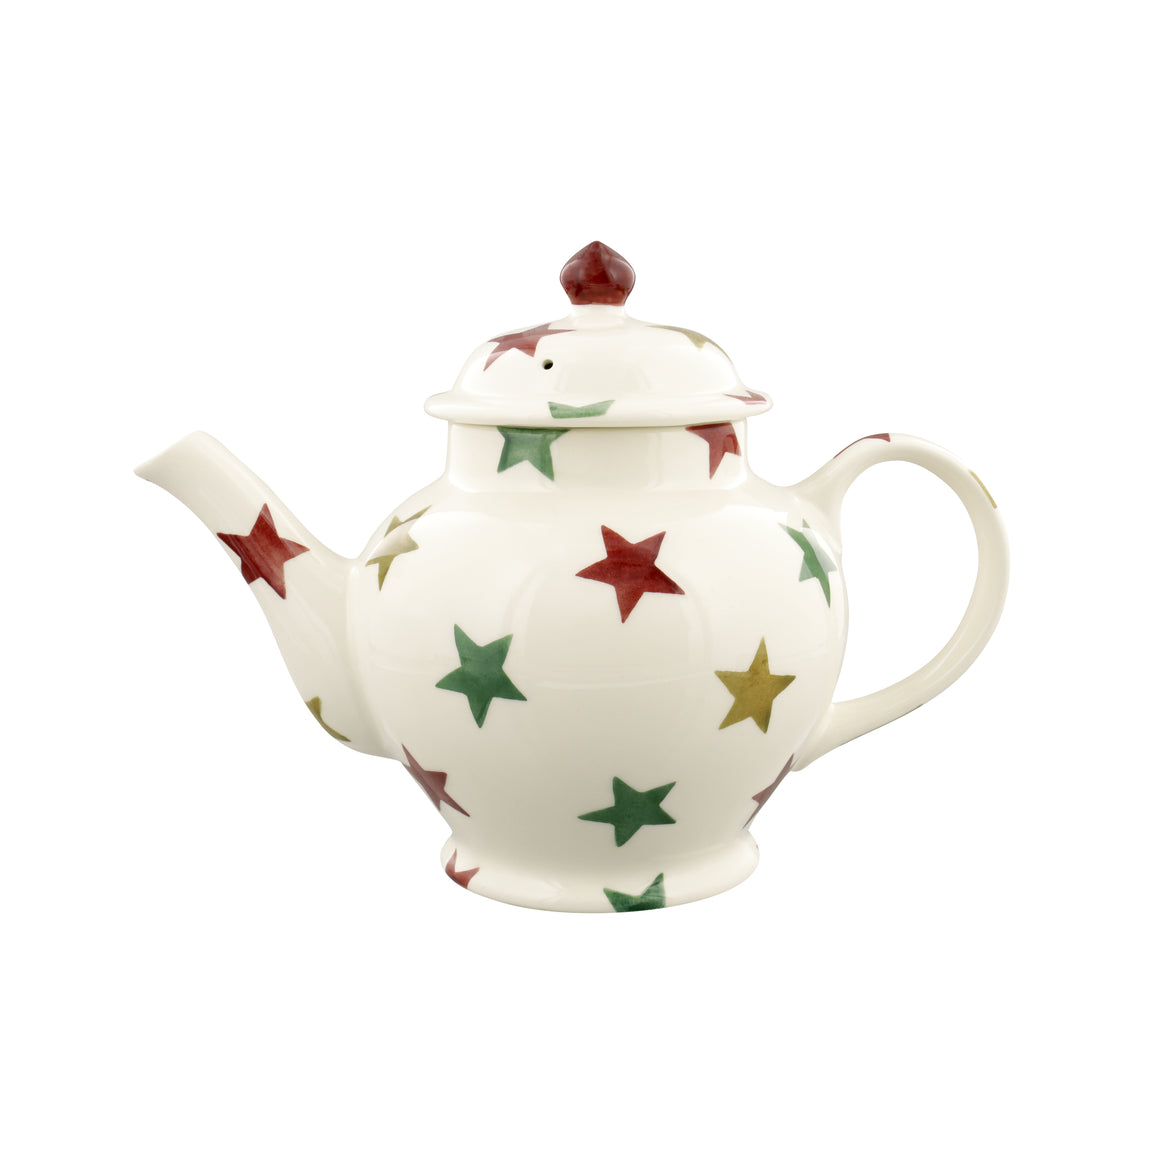 Emma Bridgewater Red, Green & Gold 3 Mug Teapot